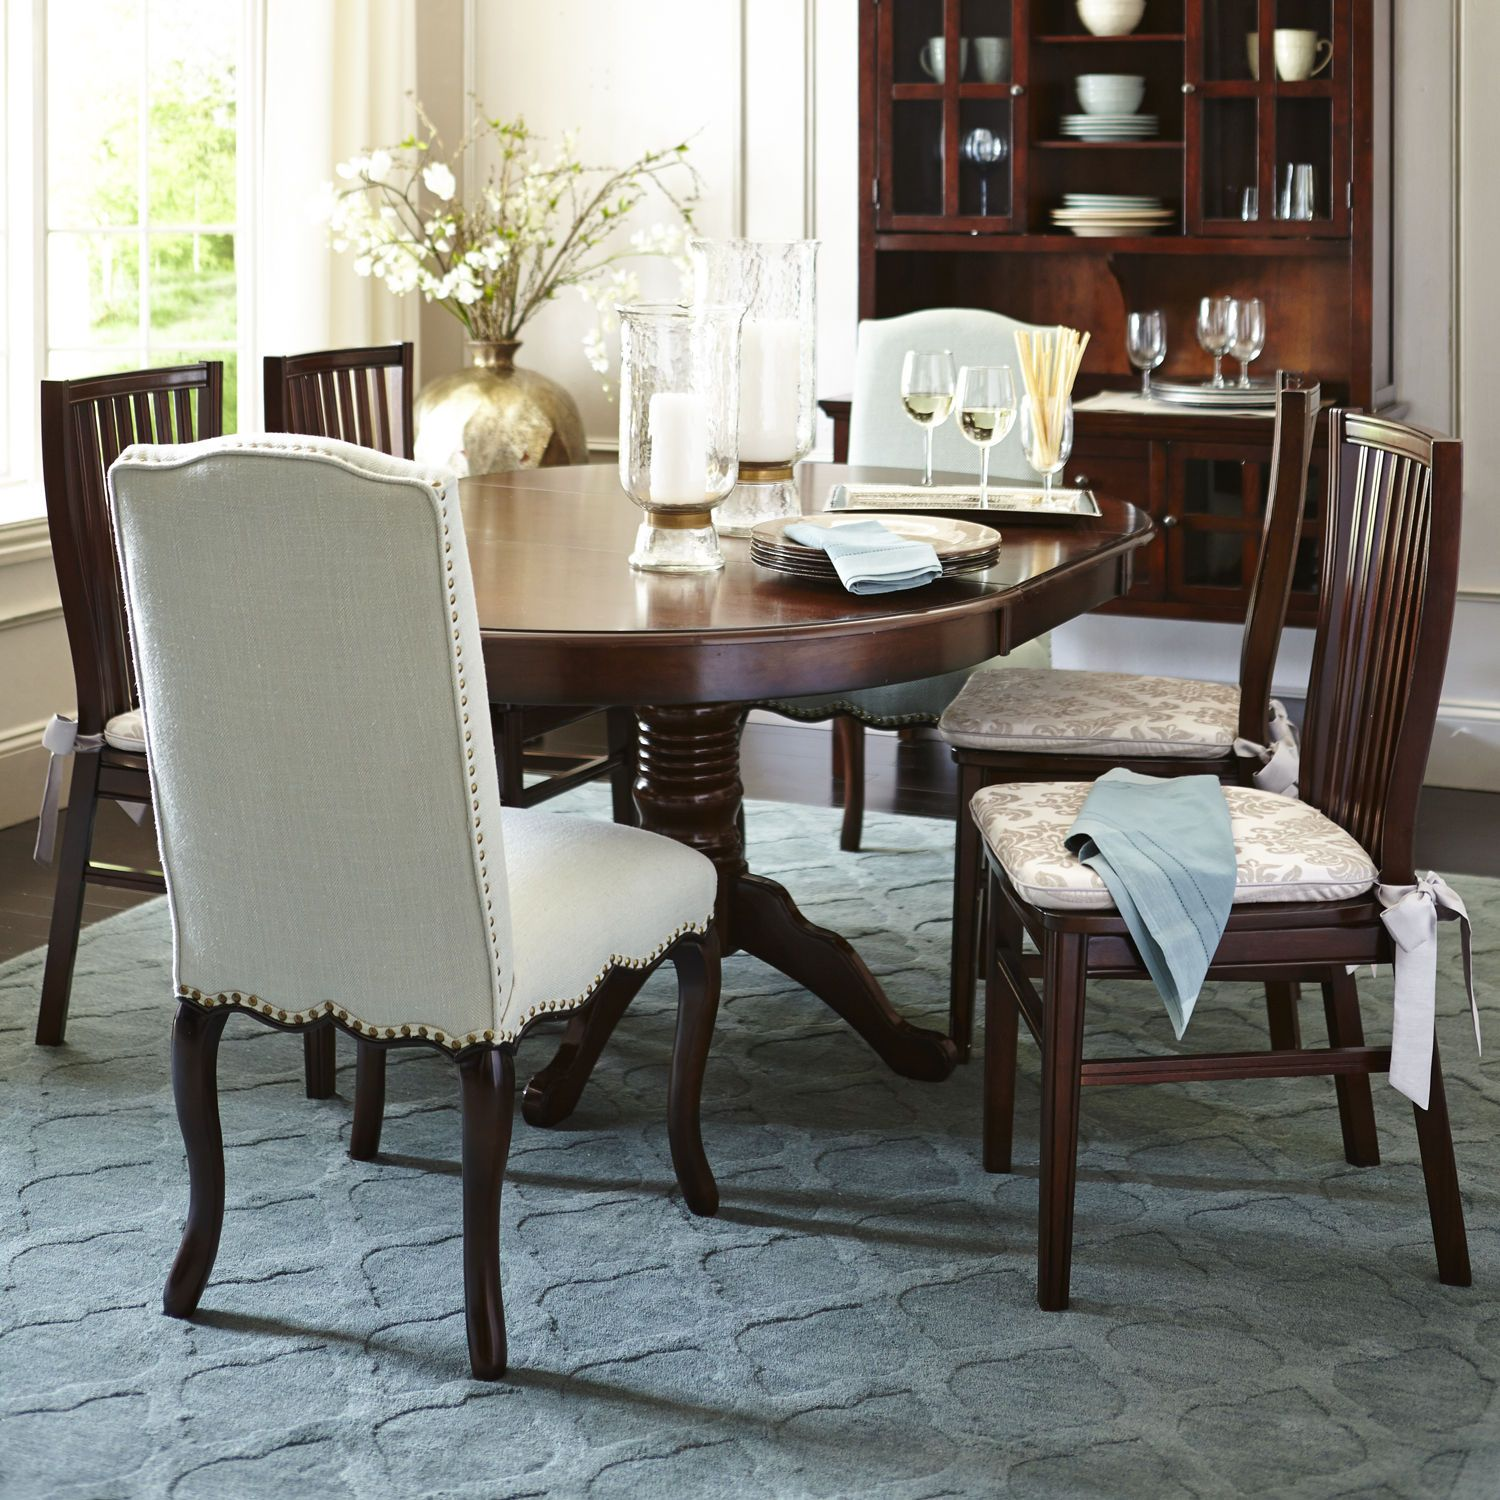 Good Way To Start Replacing Old Dining Room Chairs Two Accent